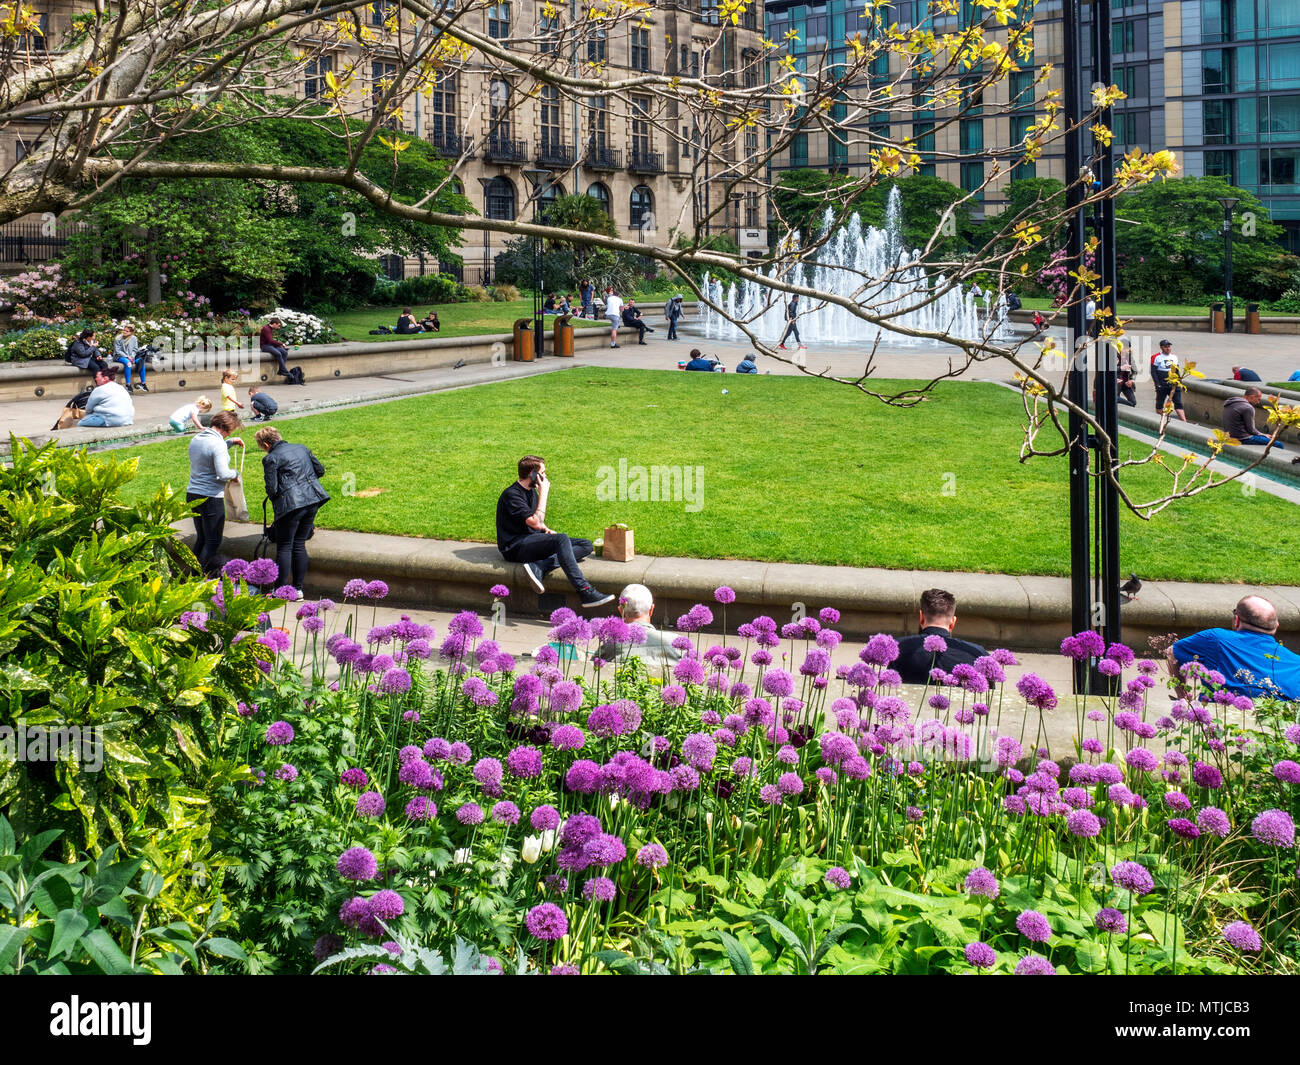 Alliums in flower at the Peace Gardens in Sheffield city centre South Yorkshire England - Stock Image